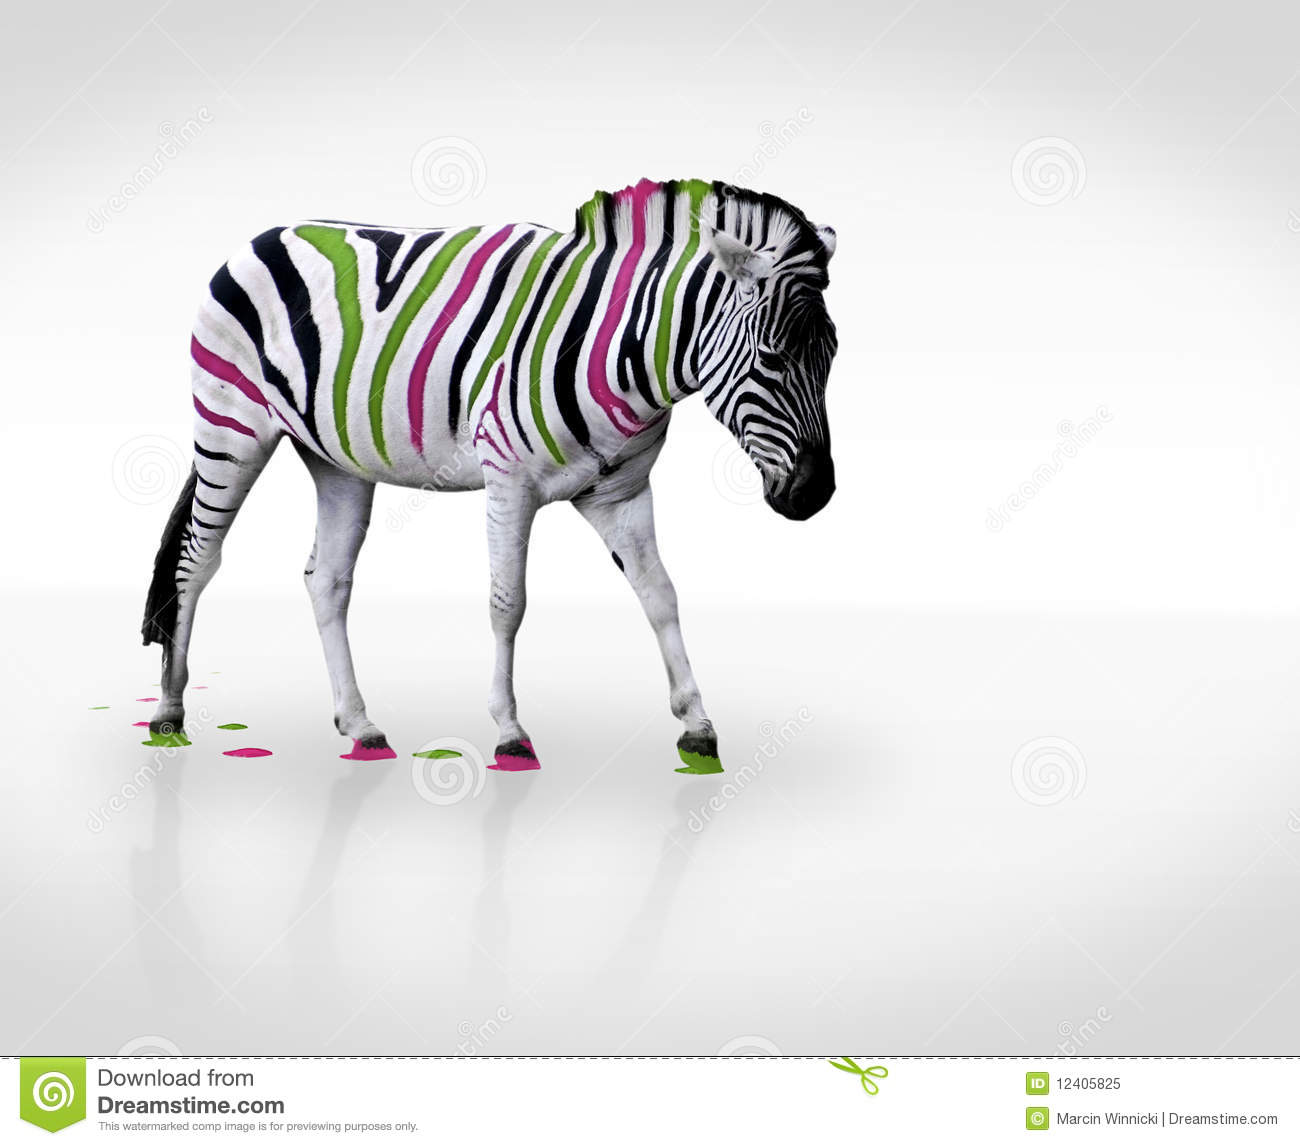 Creative Zebra Royalty Free Stock Photo - Image: 12405825